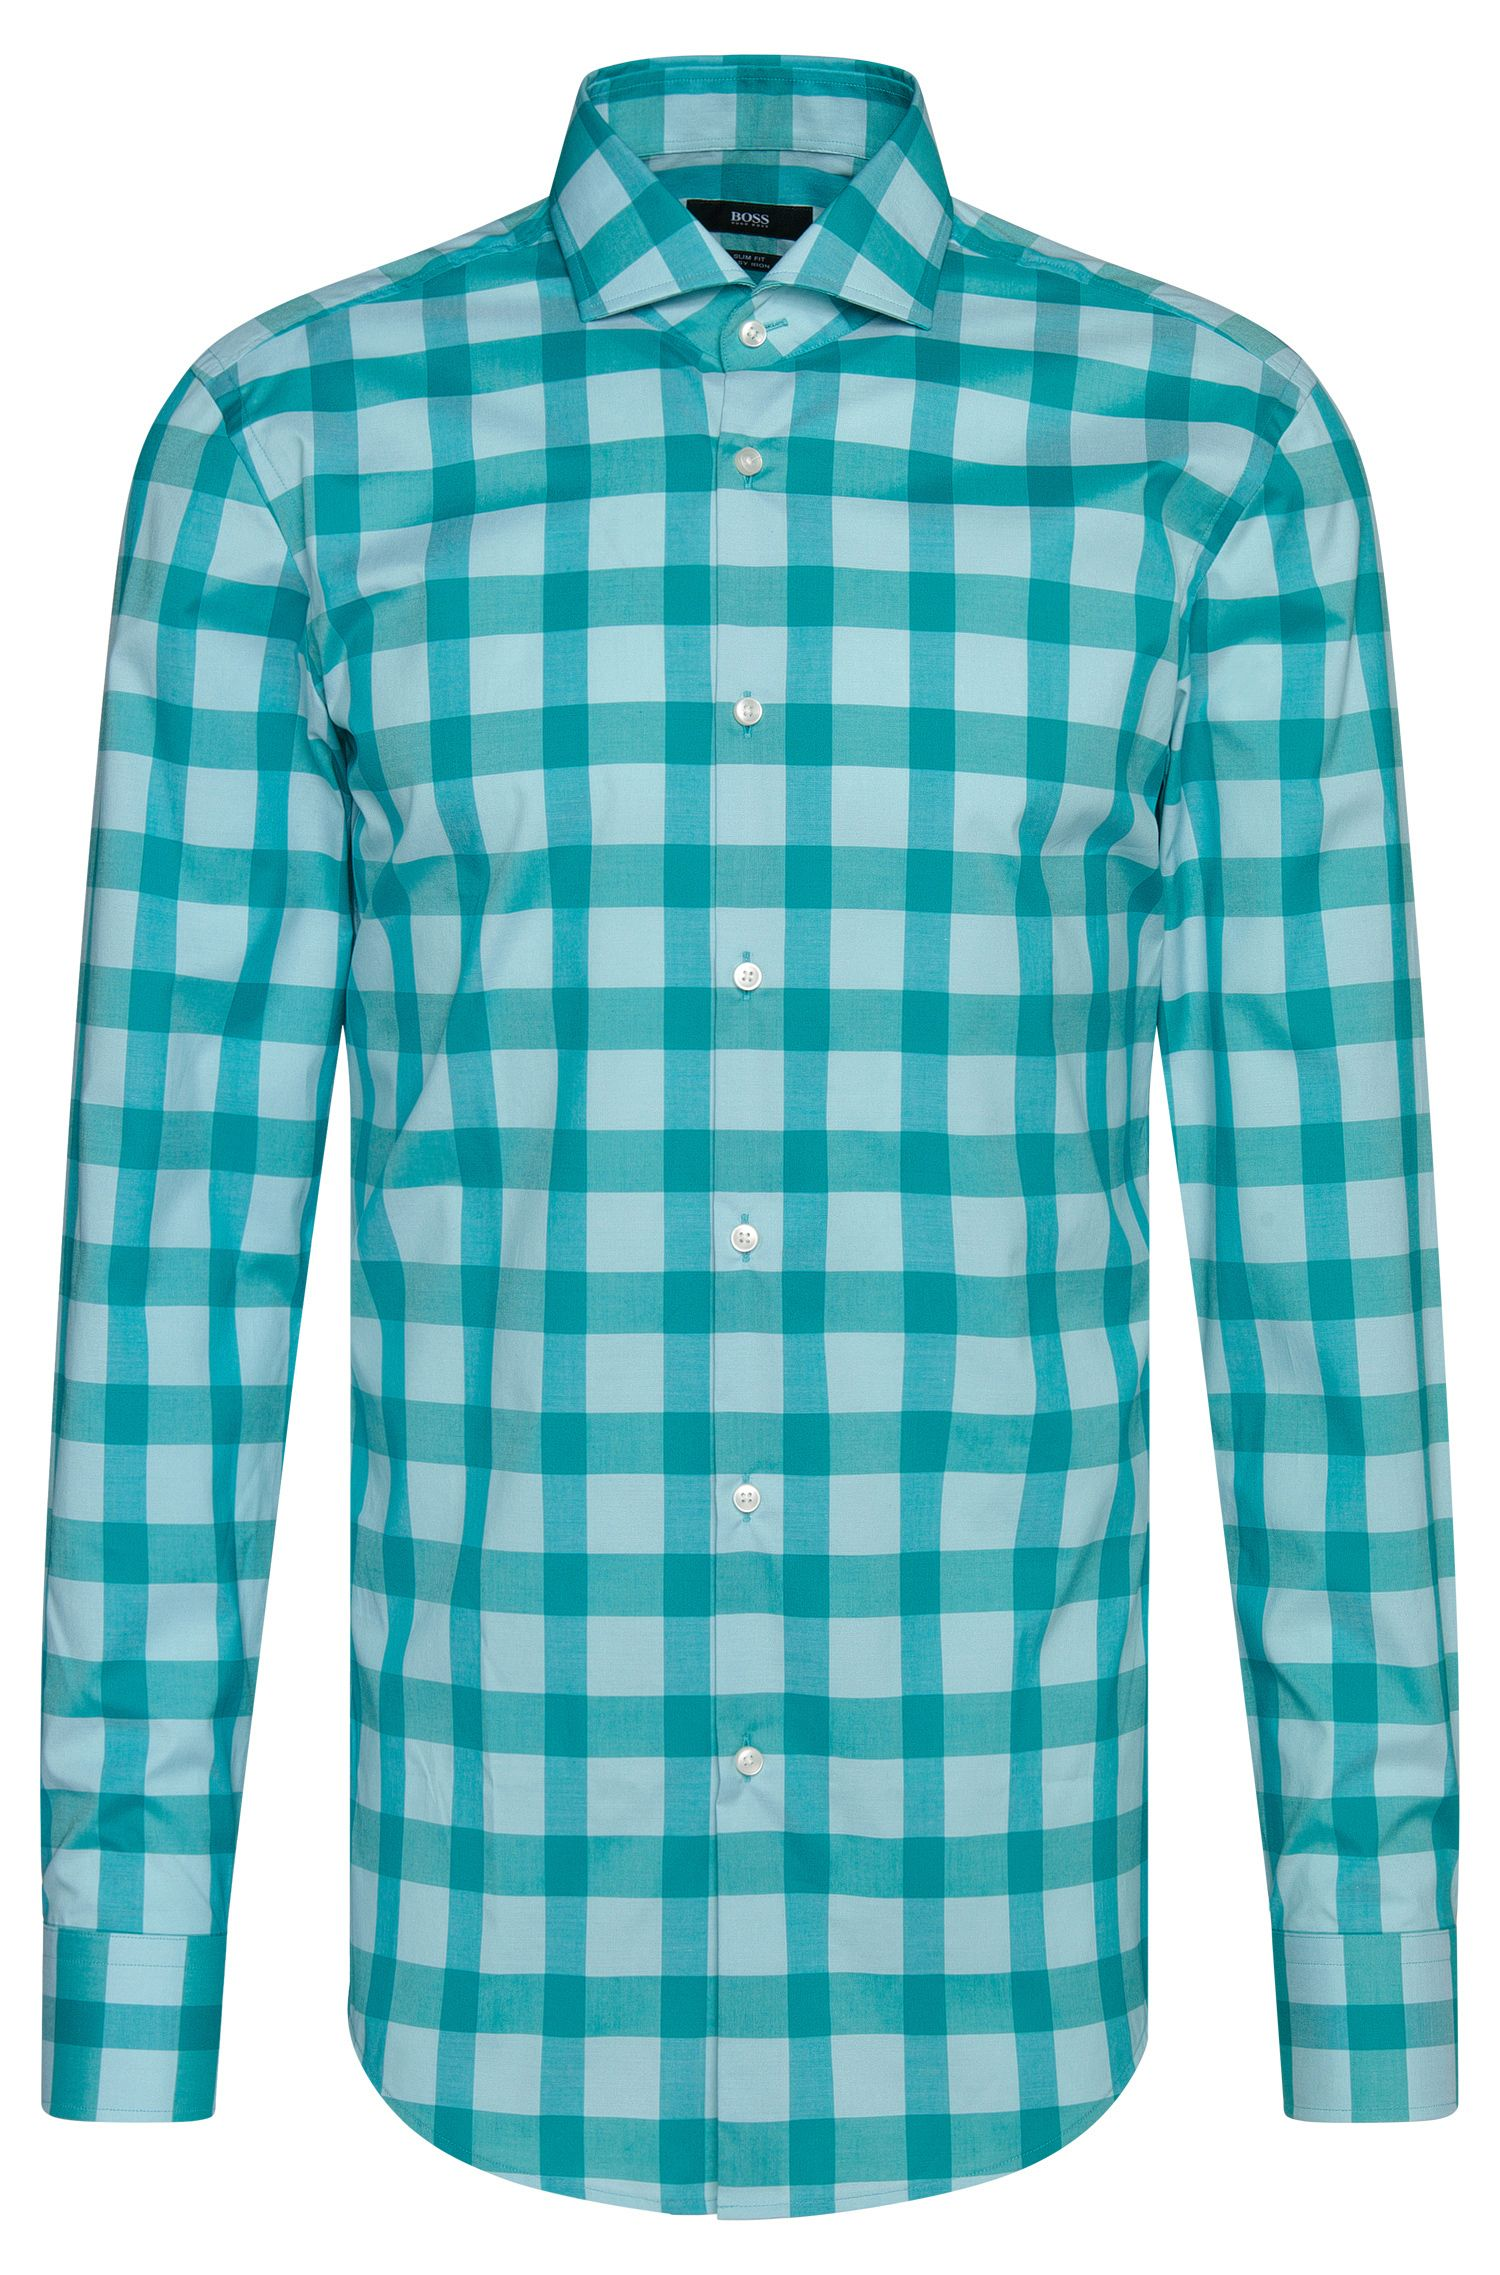 Buffalo Check Cotton Easy Iron Dress Shirt, Slim Fit | Jason